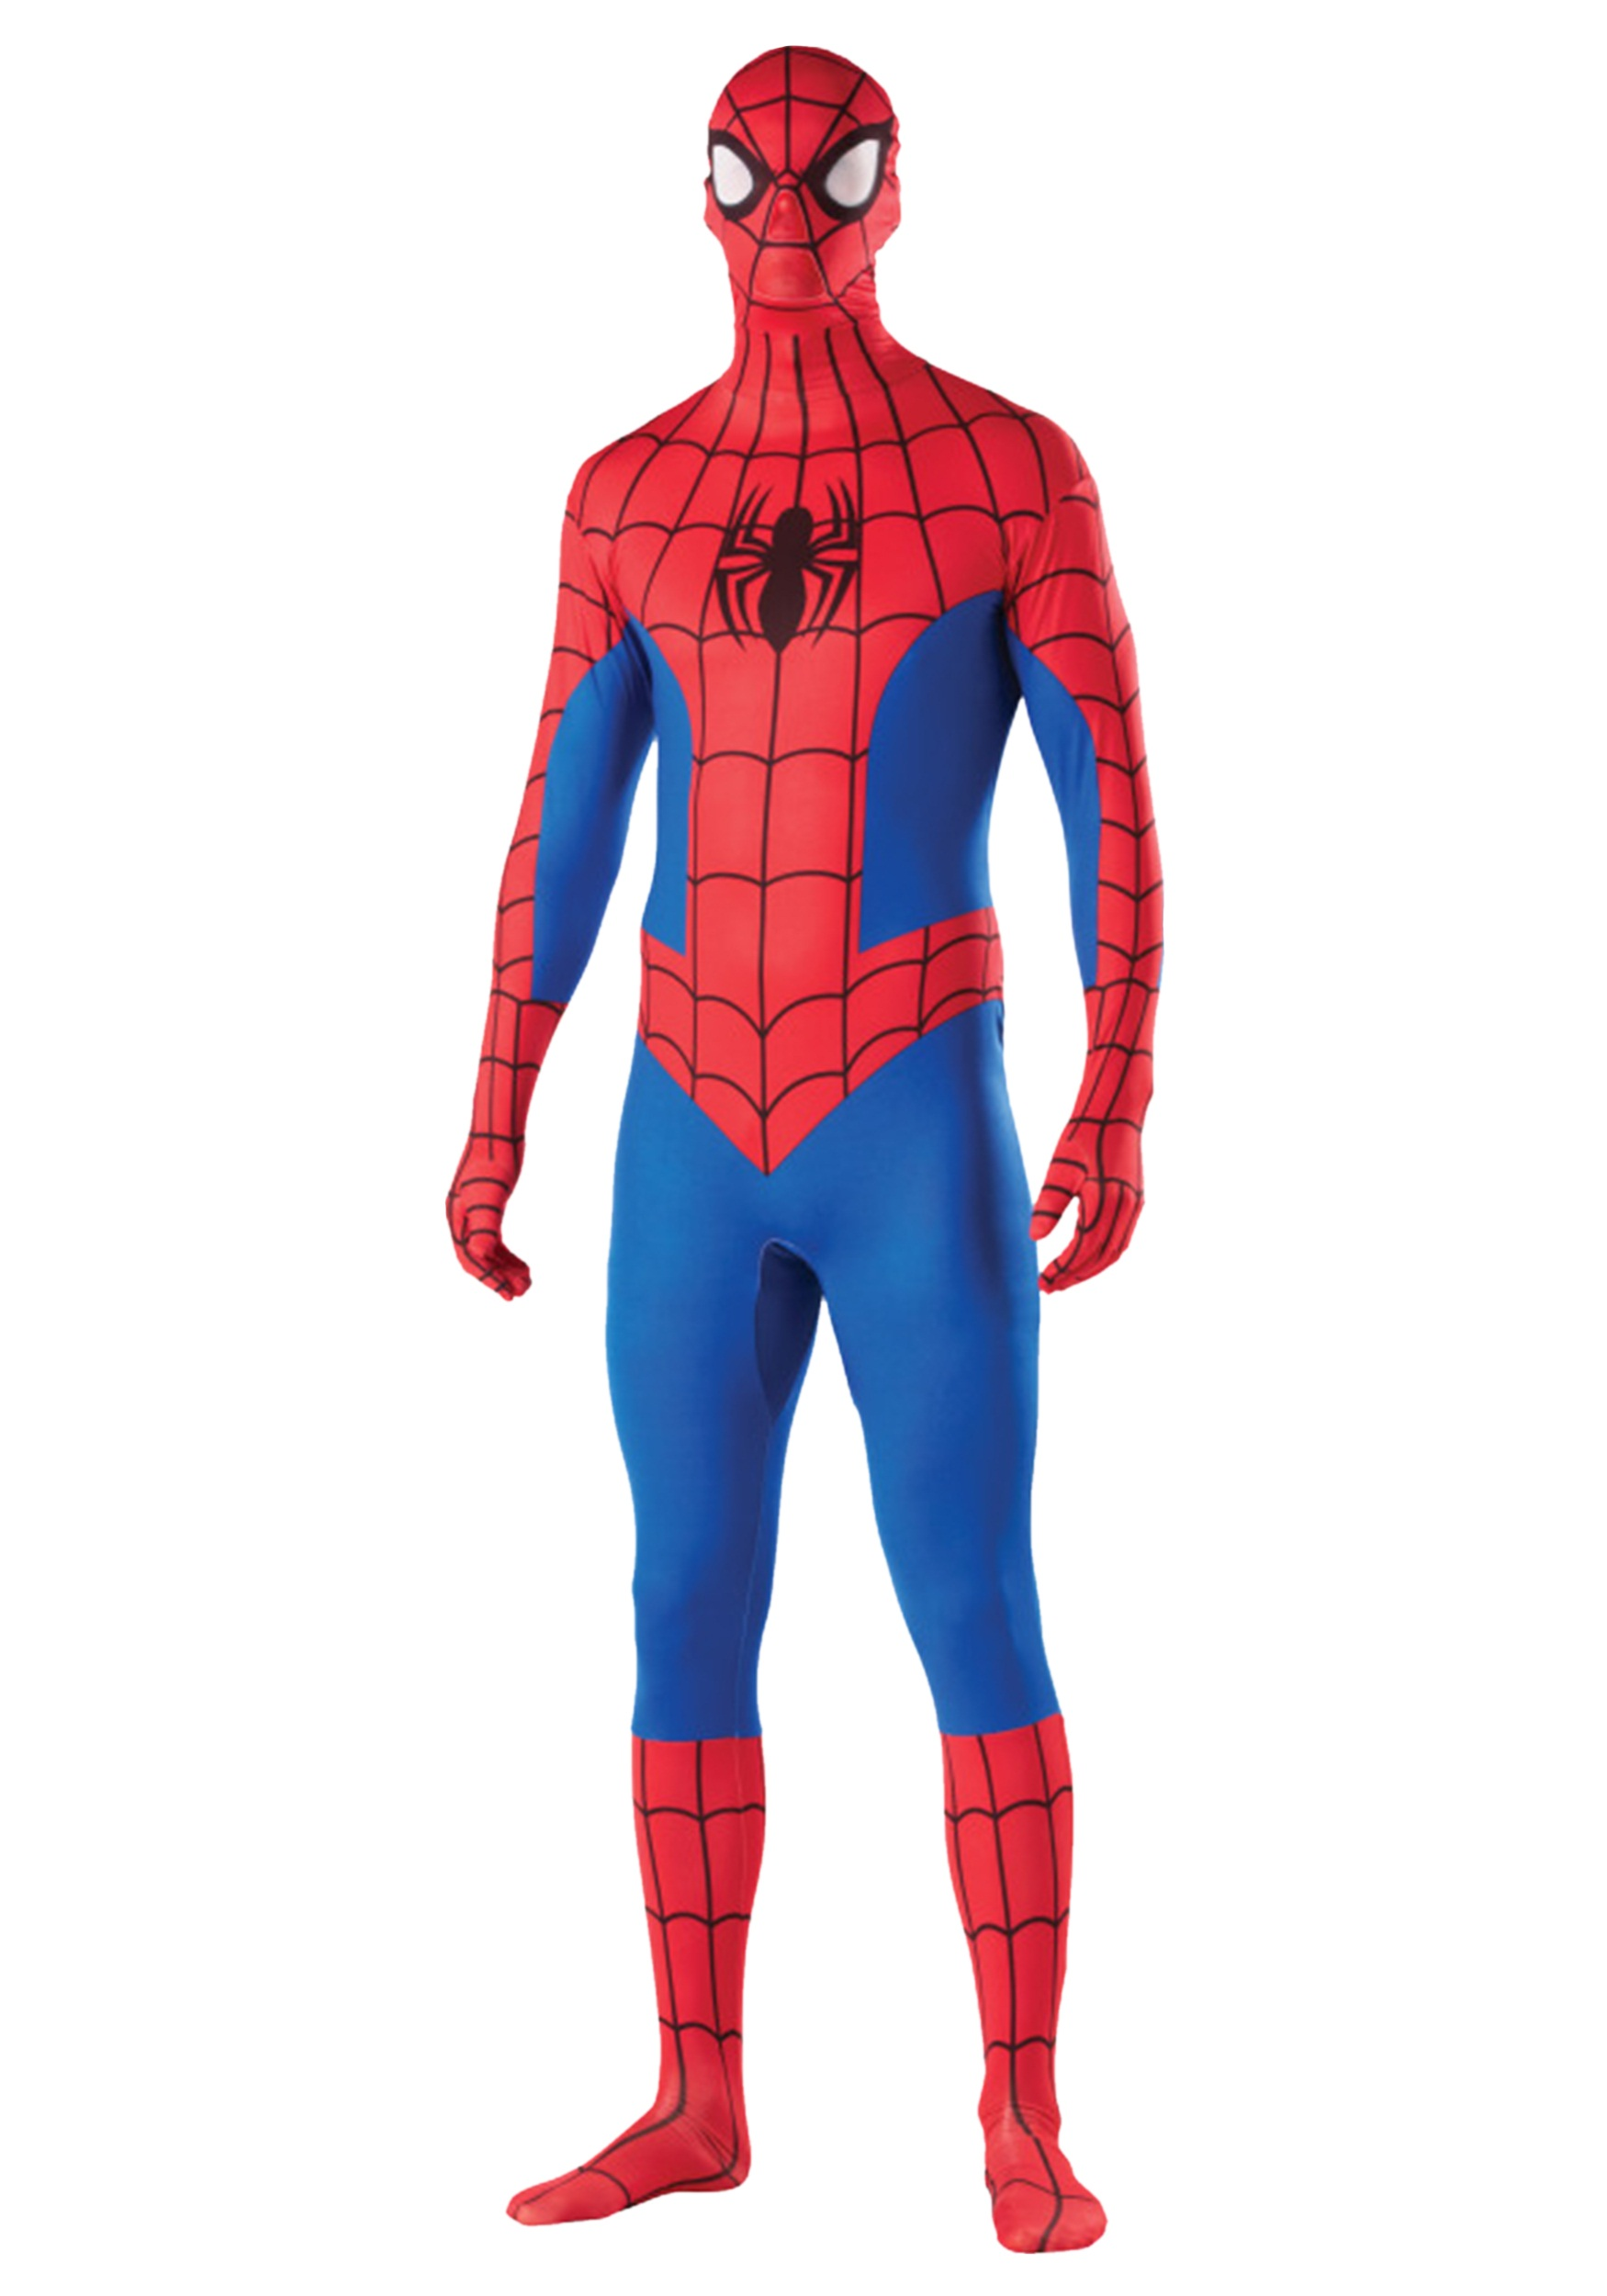 Amazing Spiderman 2 Second Skin Suit RU880824